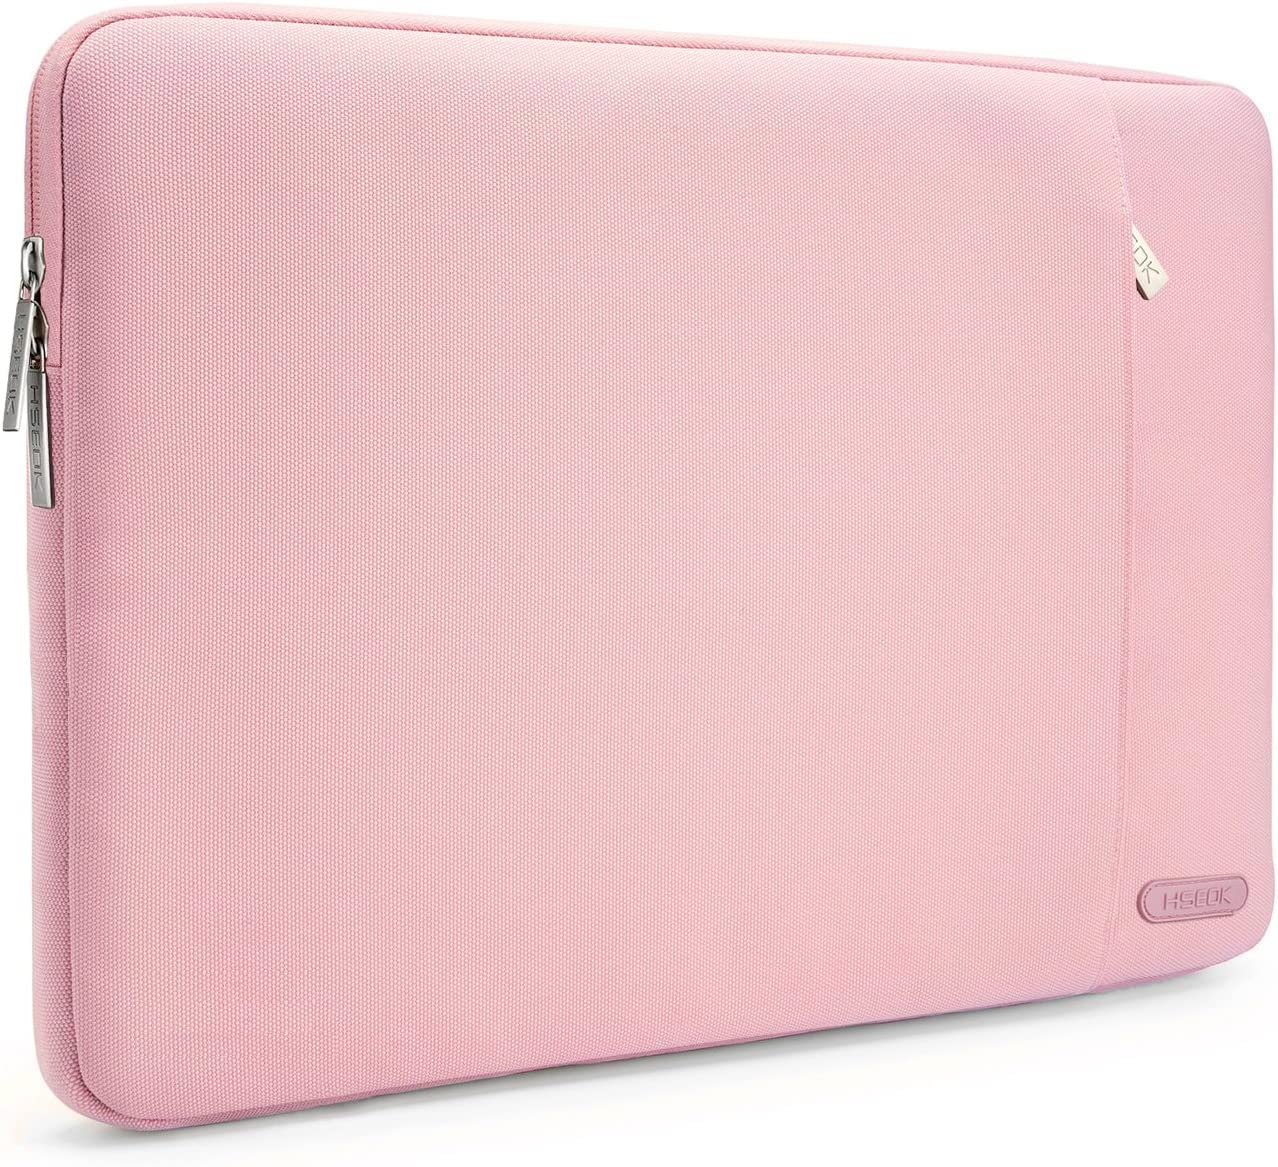 HSEOK 15.6-Inch Laptop Case Sleeve, Environmental-Friendly Spill-Resistant Case for 15.4-Inch MacBook Pro 2012 A1286, MacBook Pro Retina 2012-2015 A1398 and Most 15.6-Inch Laptop, Pink